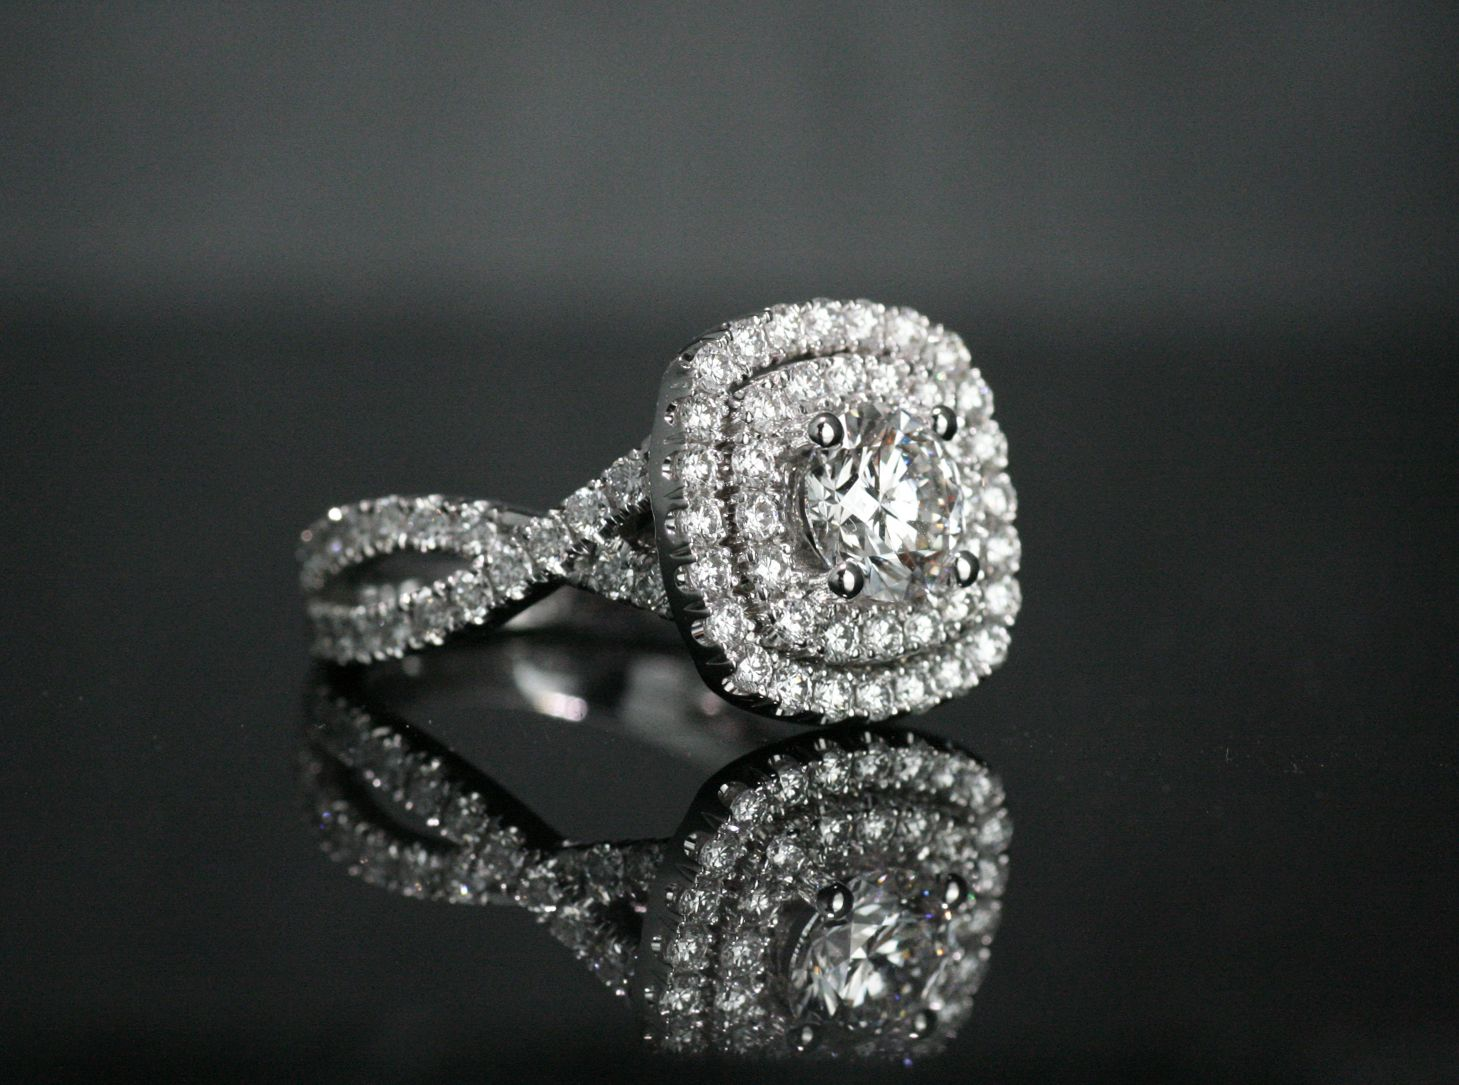 Double halo design with crisscross diamond band set in